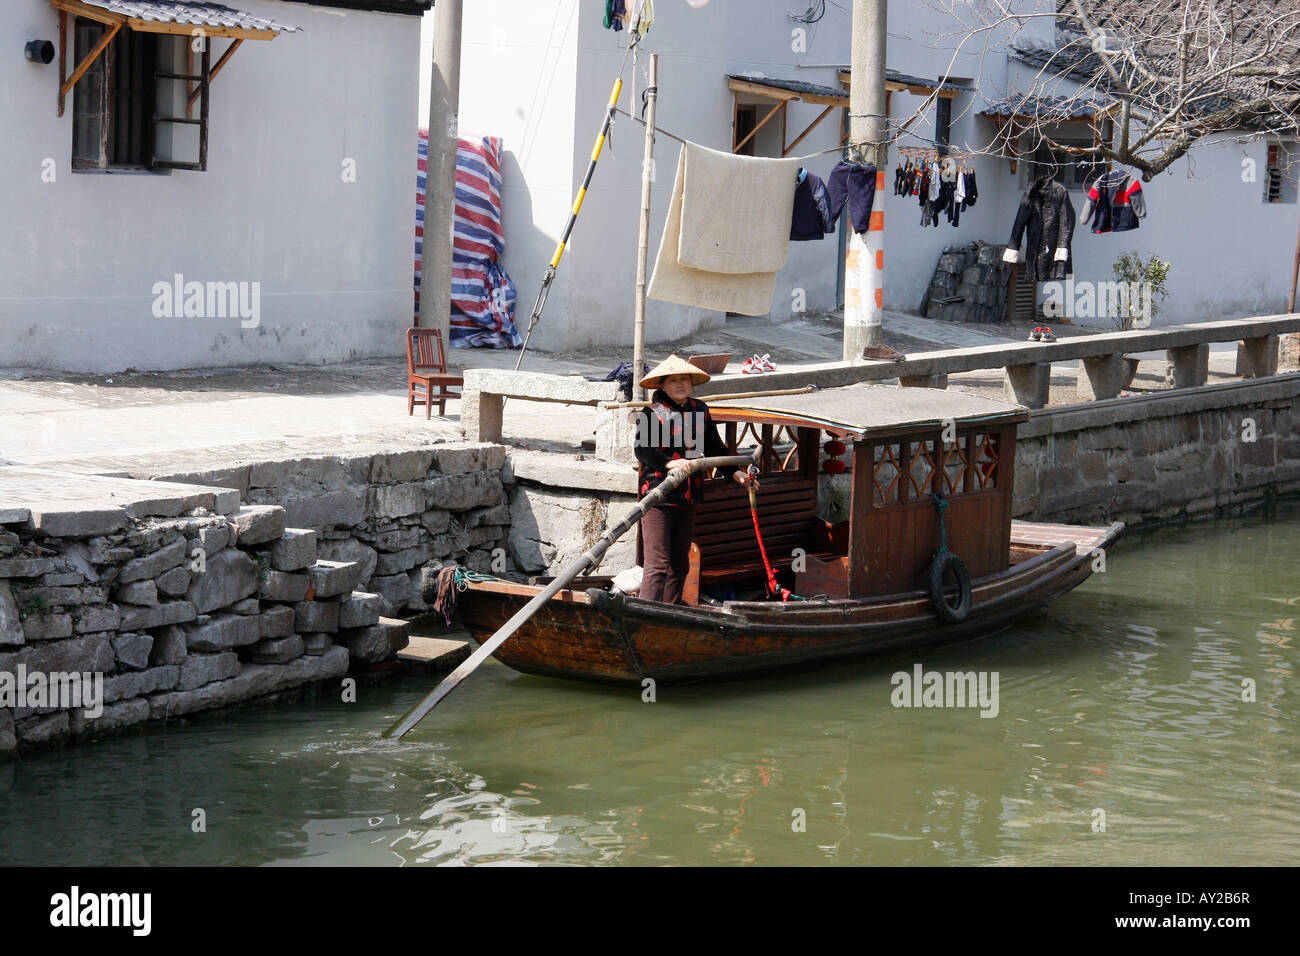 Tourist punt used for tourists tours around the canals in Suzhou,China - Stock Image